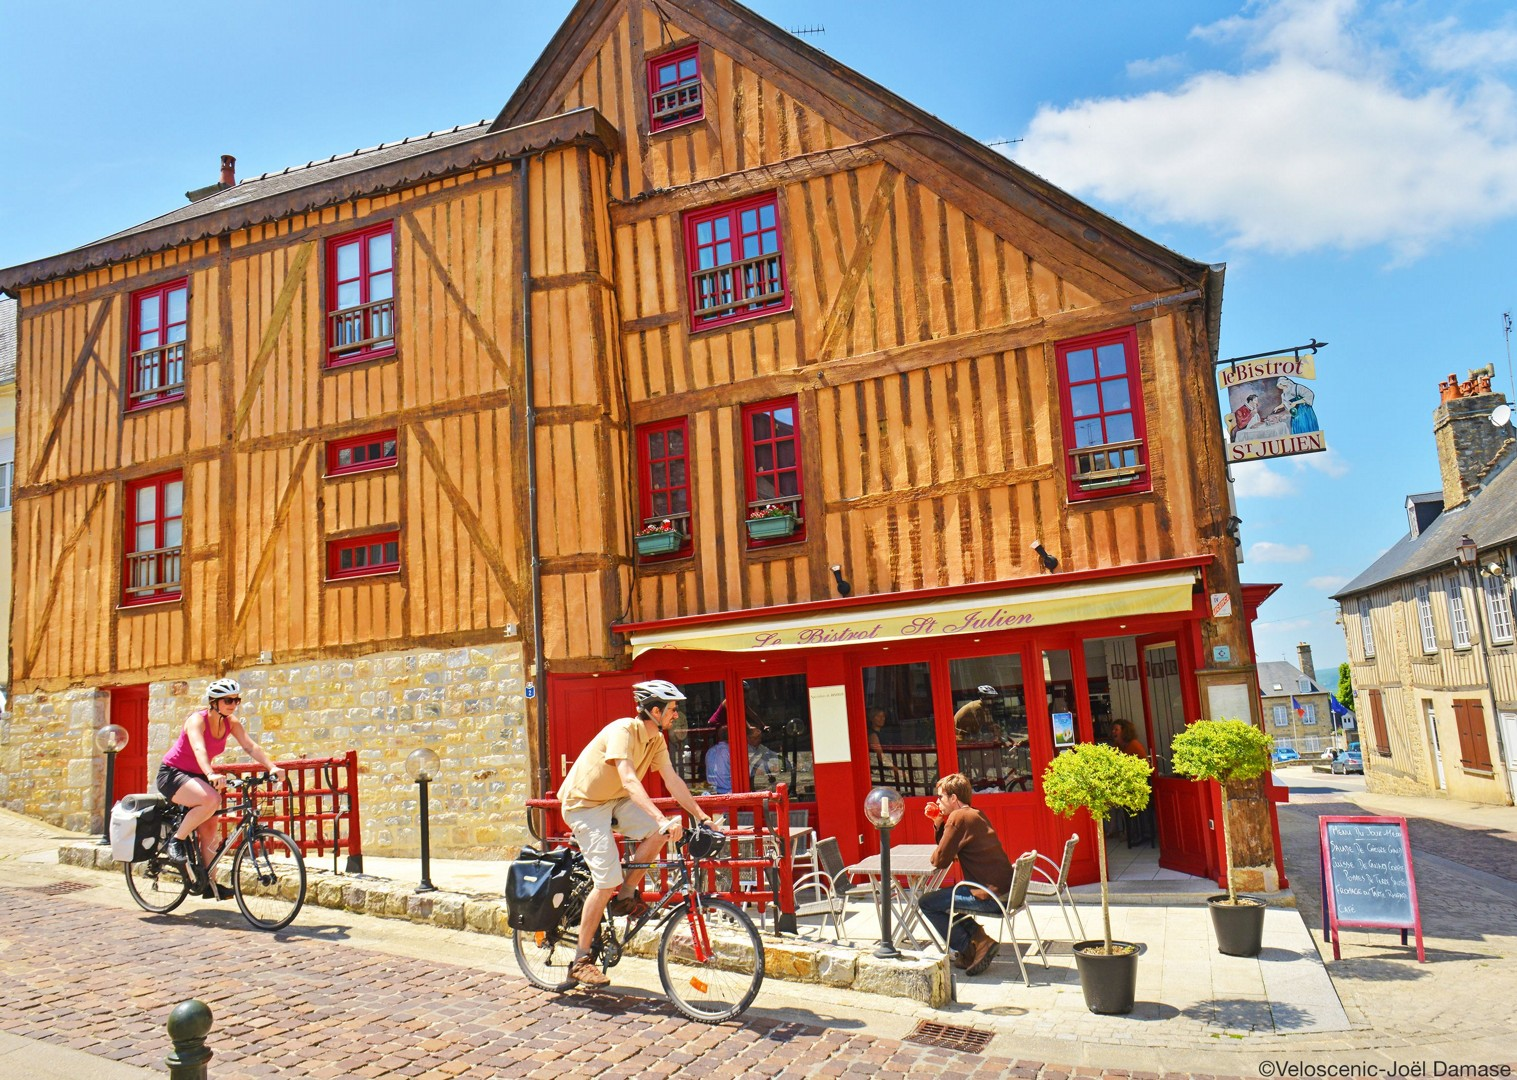 france-leisure-cycling-holiday-culture-houses-quality-accommodation.jpg - NEW! France - Versailles to Mont Saint Michel - Self-Guided Leisure Cycling Holiday - Leisure Cycling